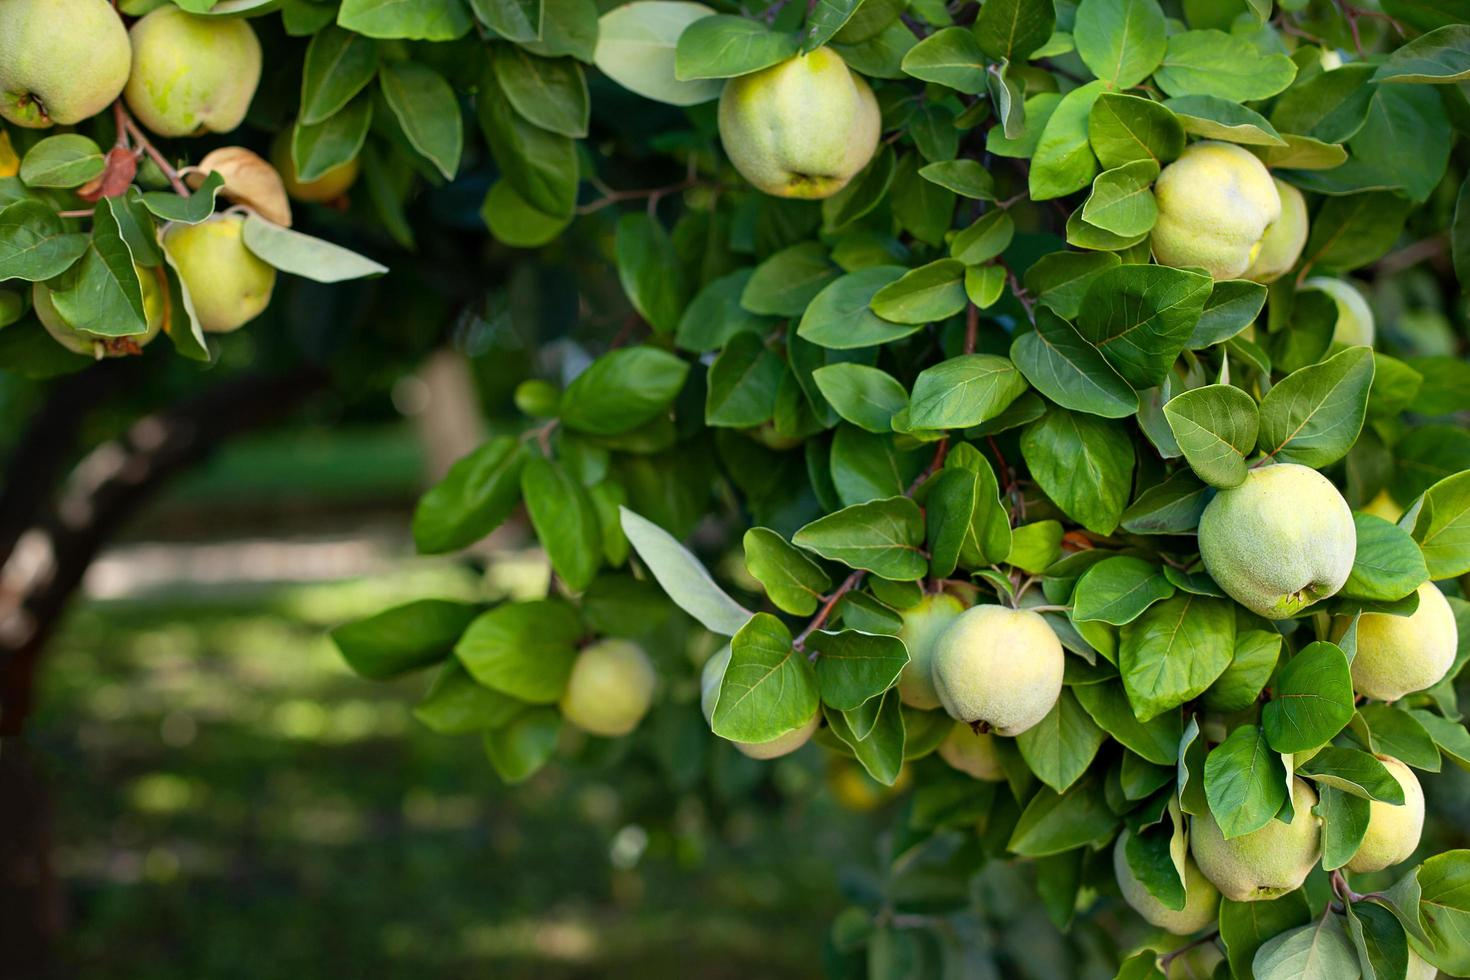 Quince tree in an organic garden photo